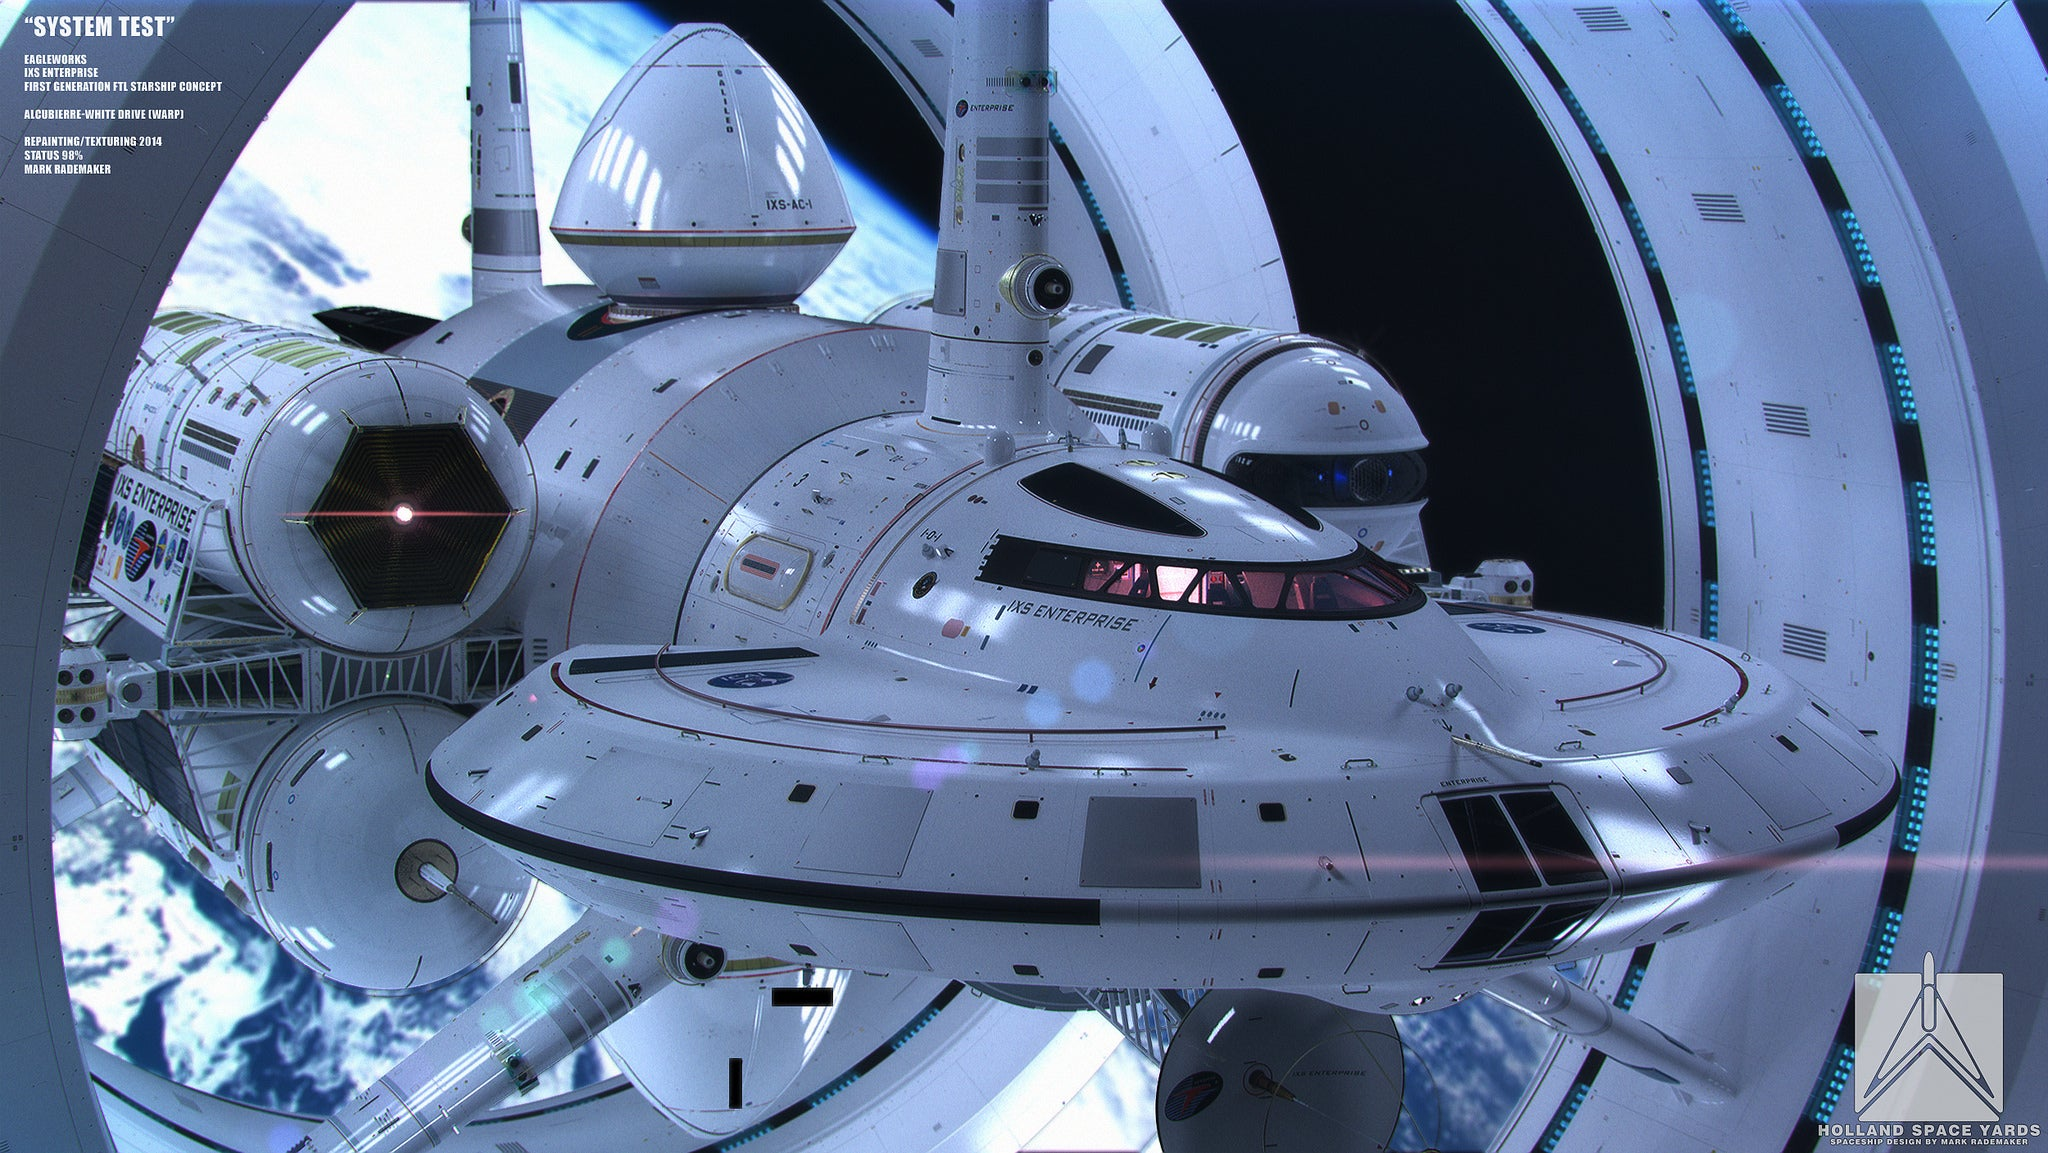 Holy Crap, NASA's Interstellar Spaceship Concept Is Amazing!